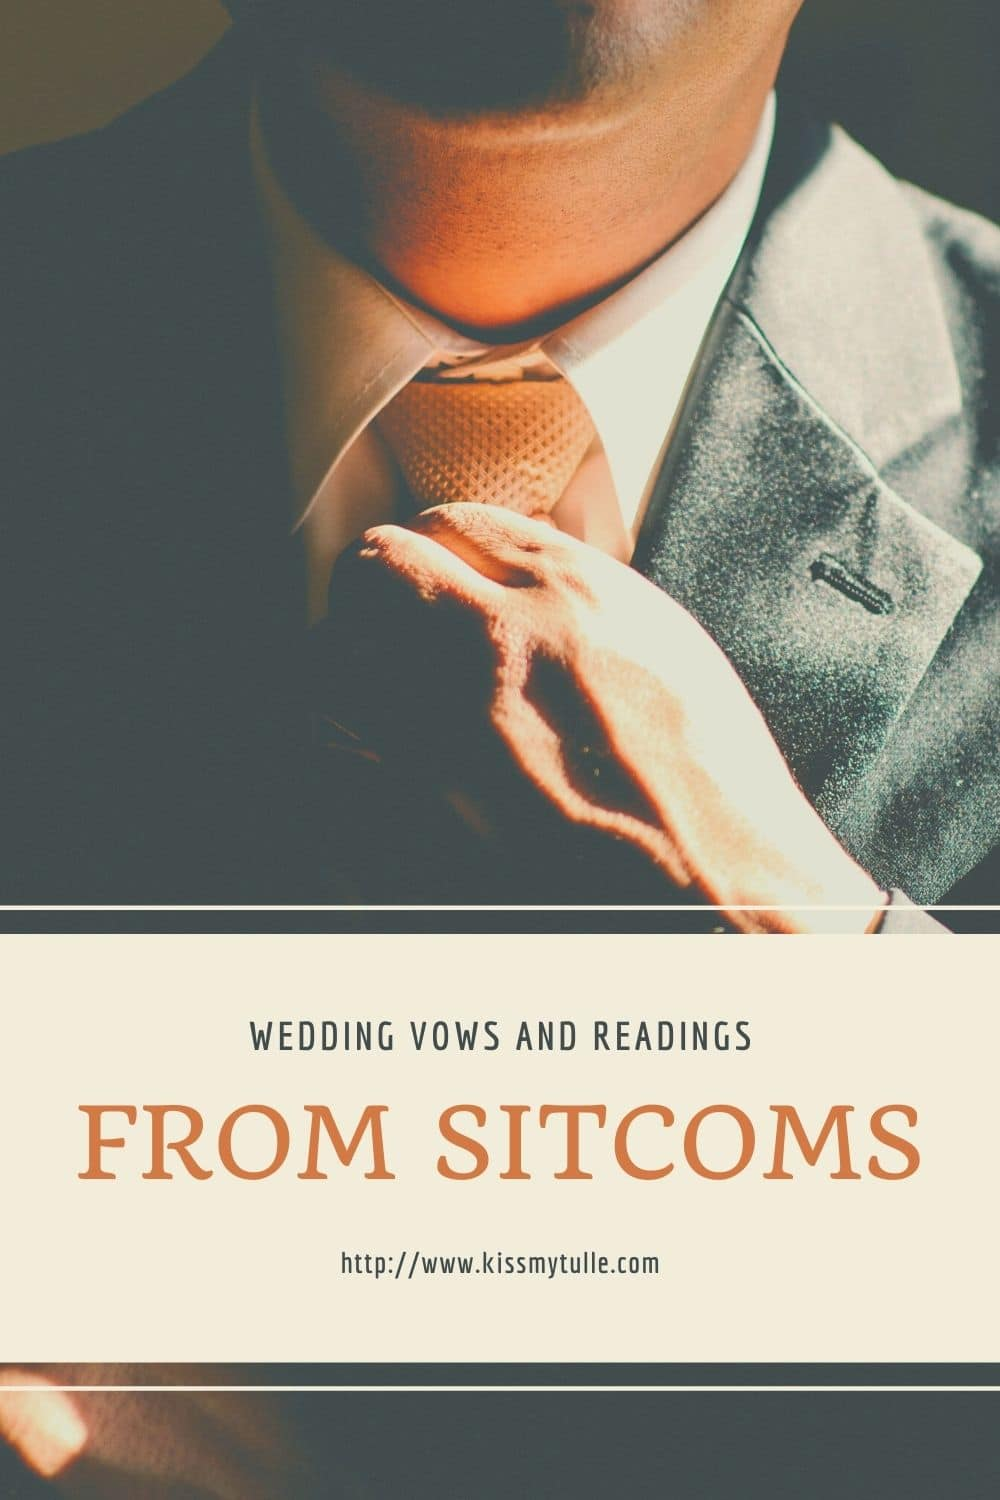 Looking for fun, alternative vows or readings for your wedding with a more comedic lean? Well, here ya go! Some wedding vows - television sitcom style!